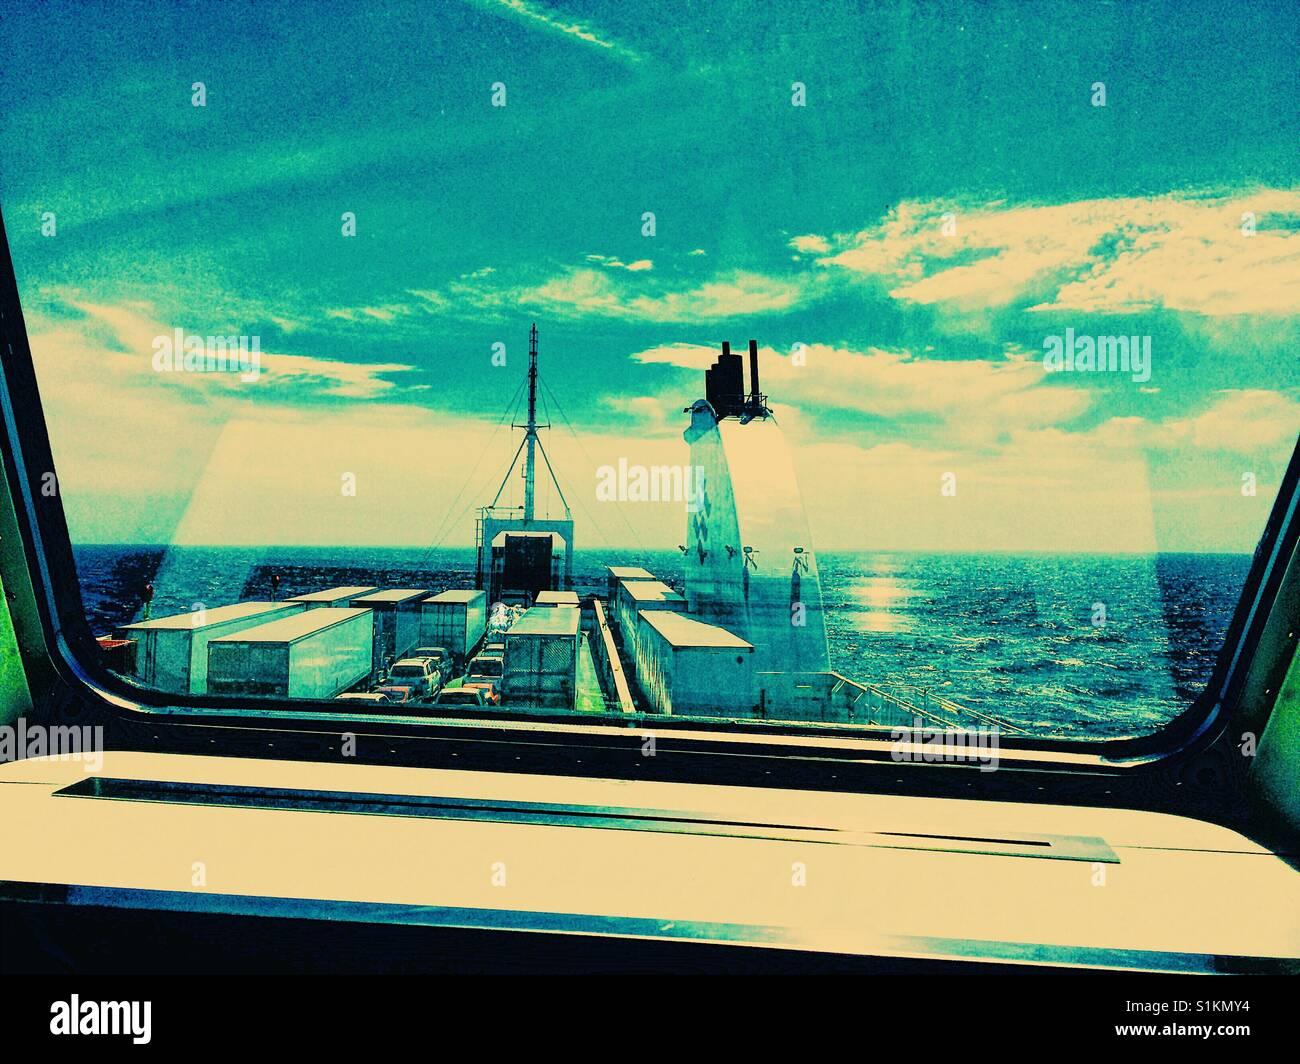 View through window on ferry across the Cabot Strait from Nova Scotia to Newfoundland, Canada Stock Photo